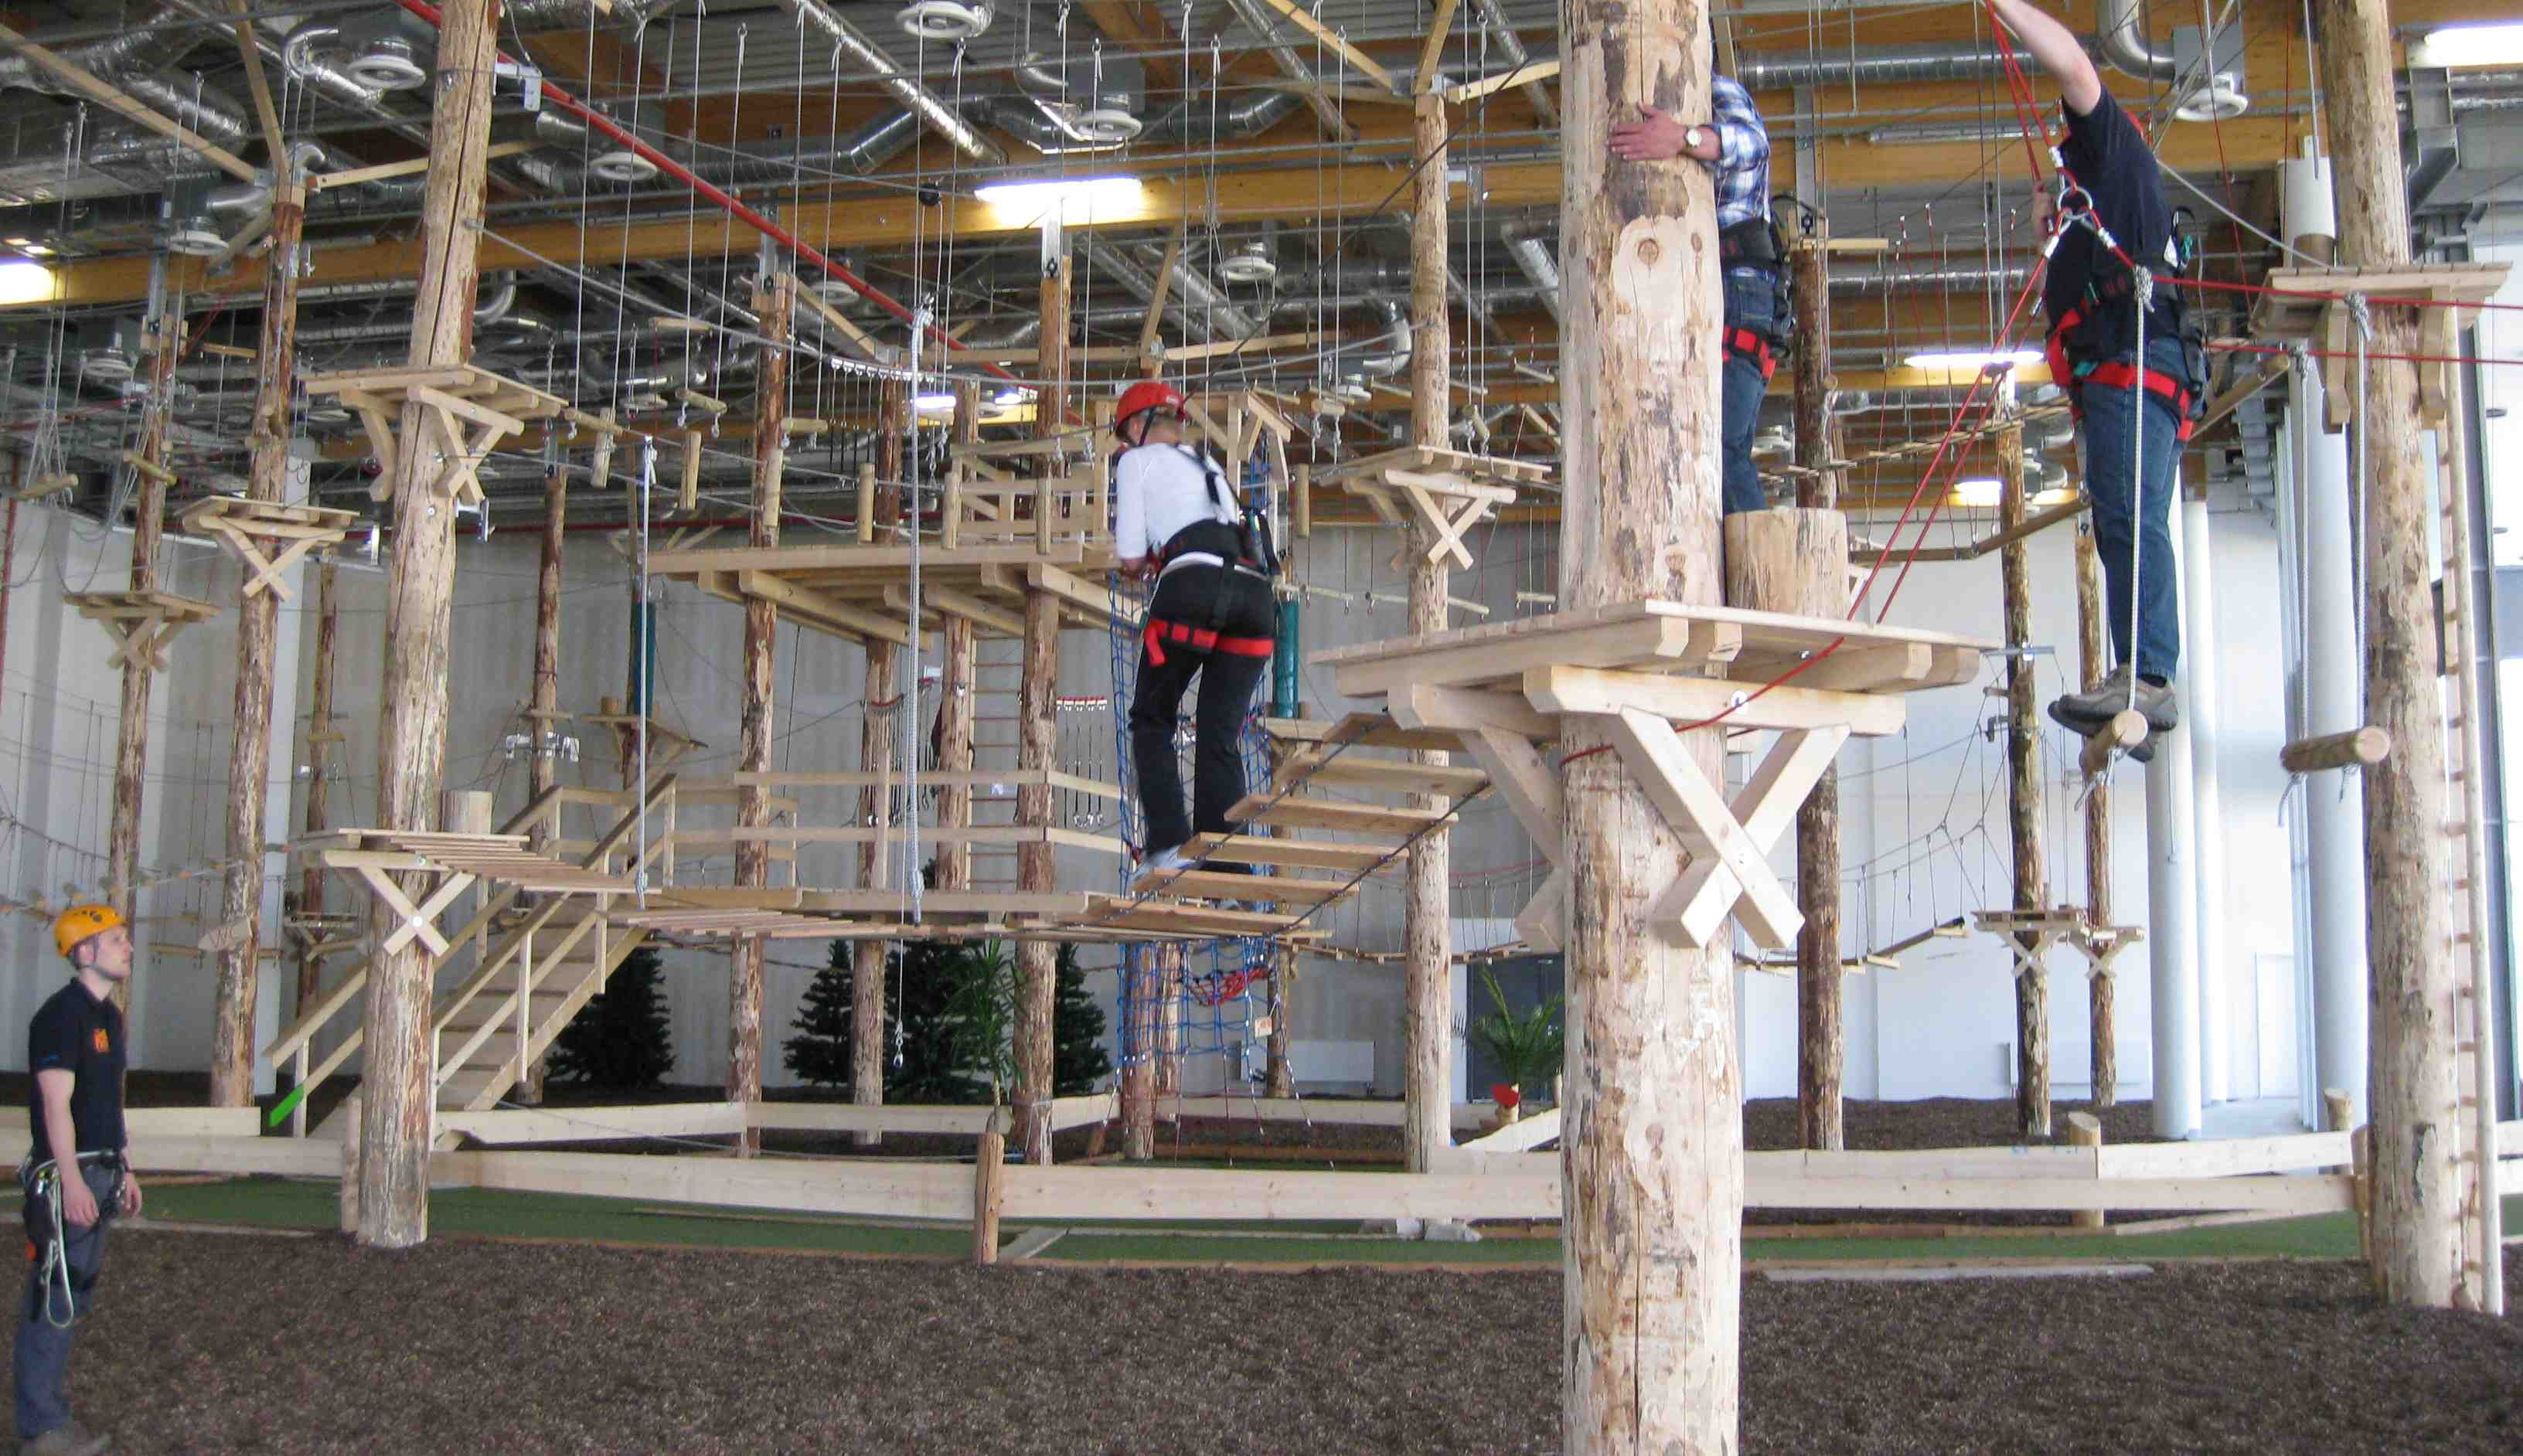 Indoor Rope Course Setup Compnay in India  I Explore Adventure